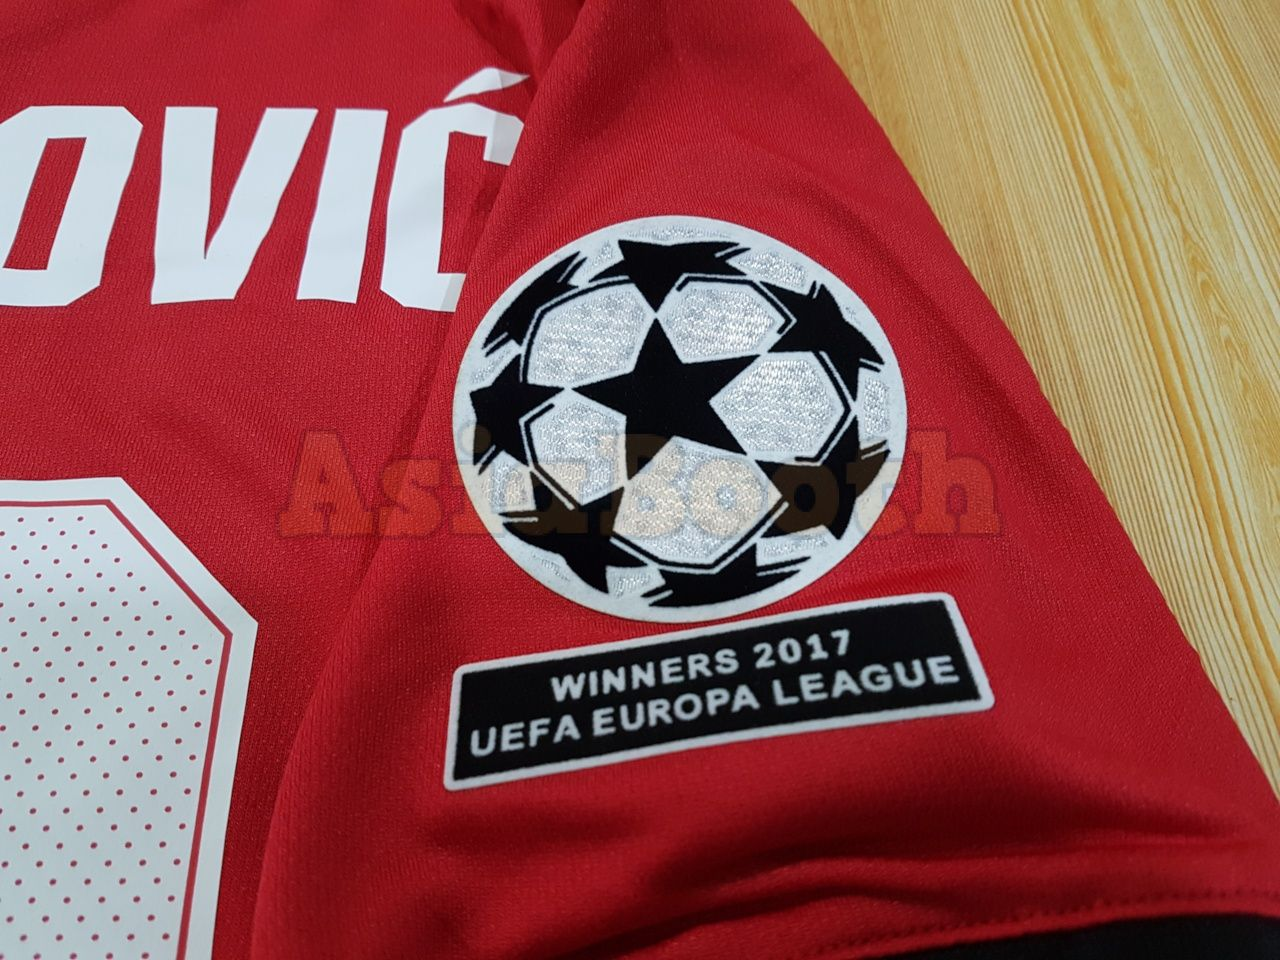 cheaper 106b2 f083a 2017-2018 Champions League Manchester United Home Jersey For Men  (Ibrahimovic #10)